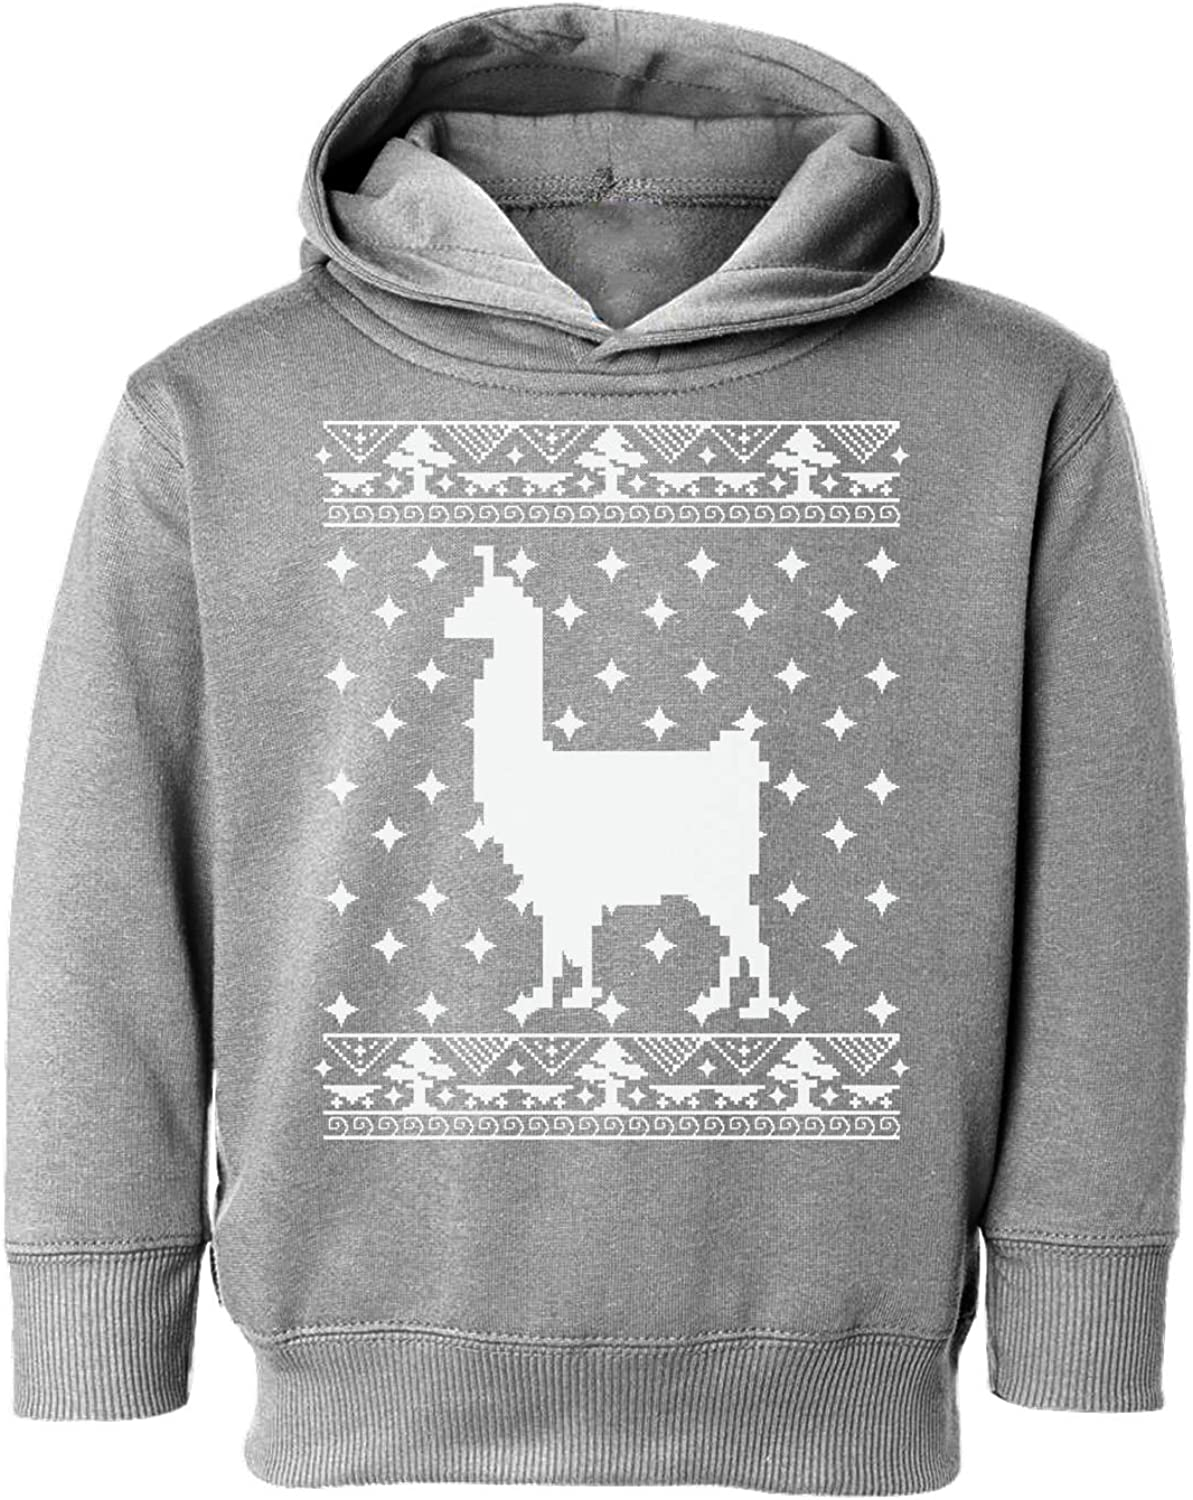 4 years warranty Awkward Styles Ugly Xmas Hoodie for Boys Christmas Girls Toddler Max 79% OFF